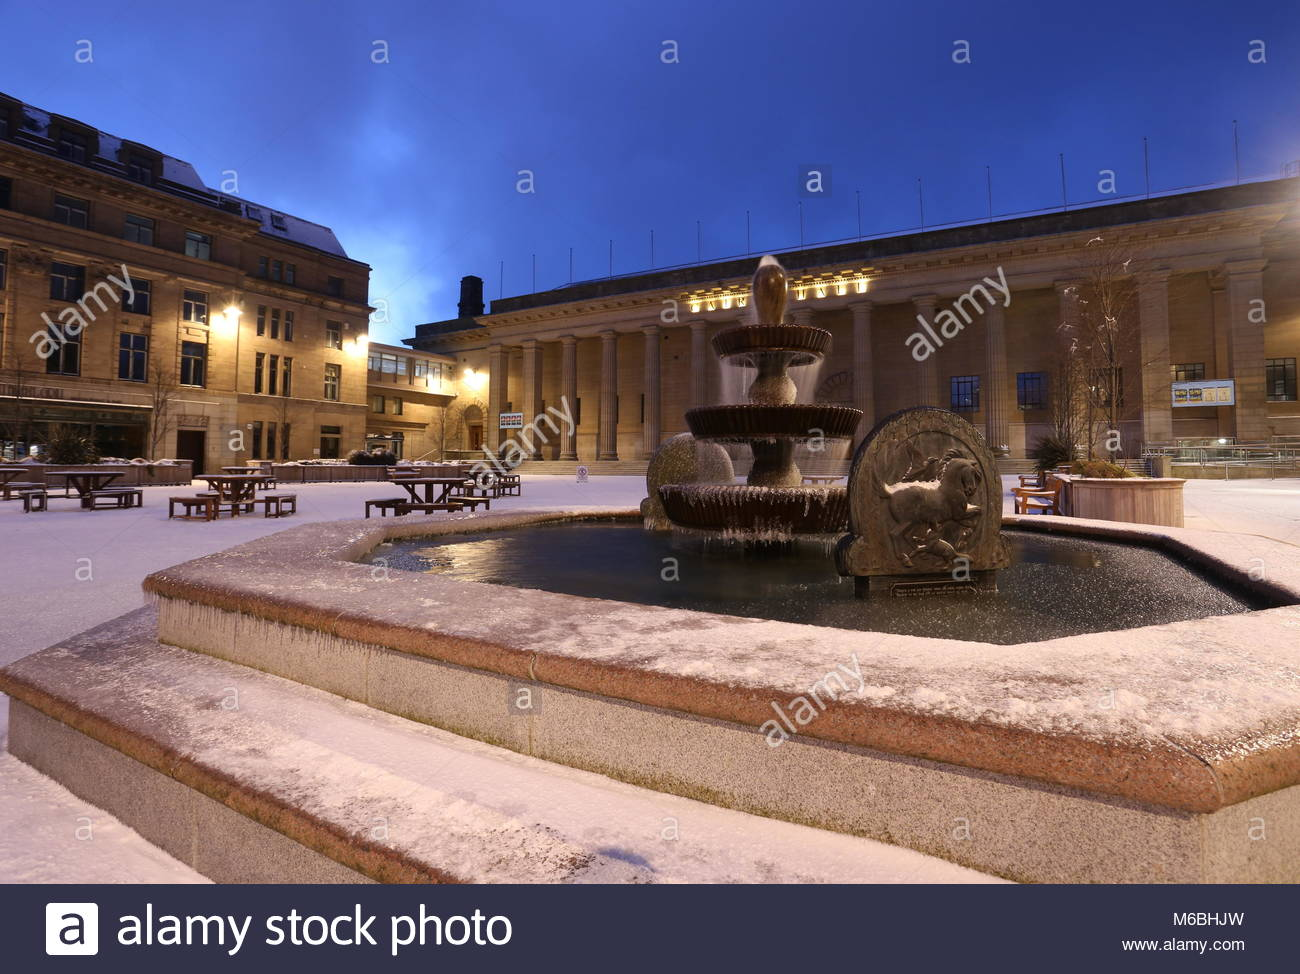 City Square and Caird Hall in winter Dundee Scotland  February 2018 - Stock Image